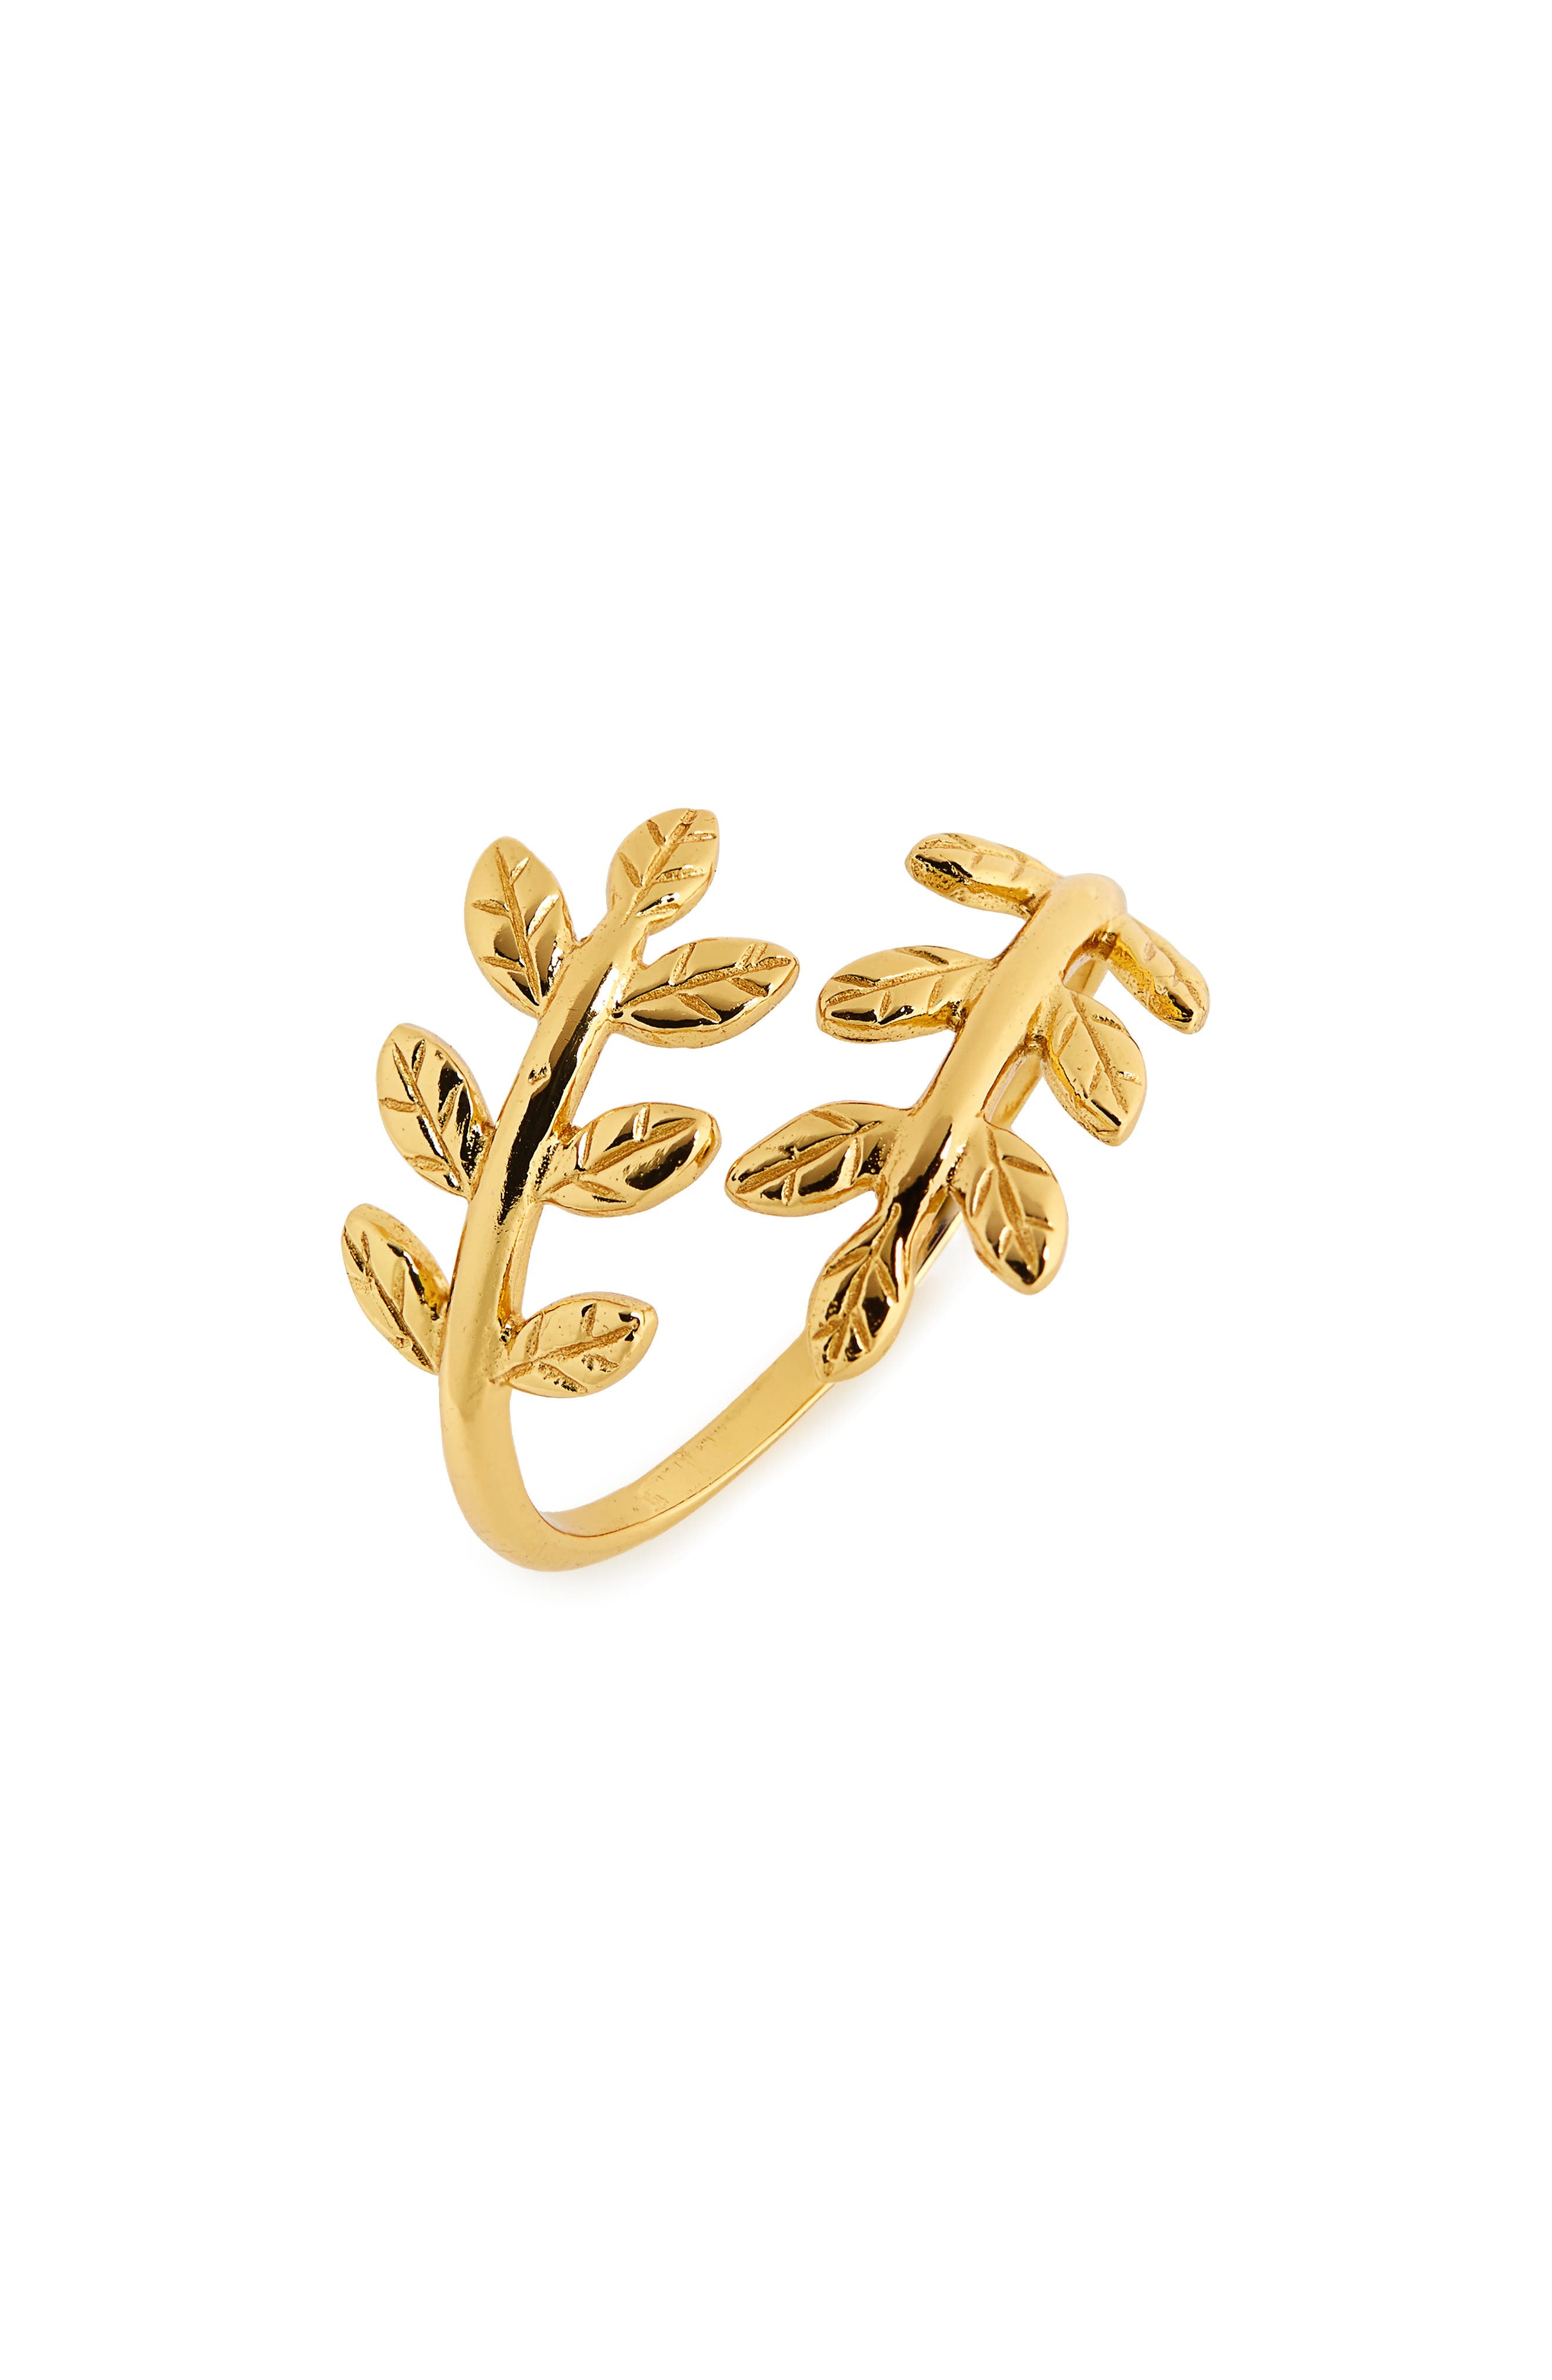 Foliage Open Ring,                         Main,                         color, Gold